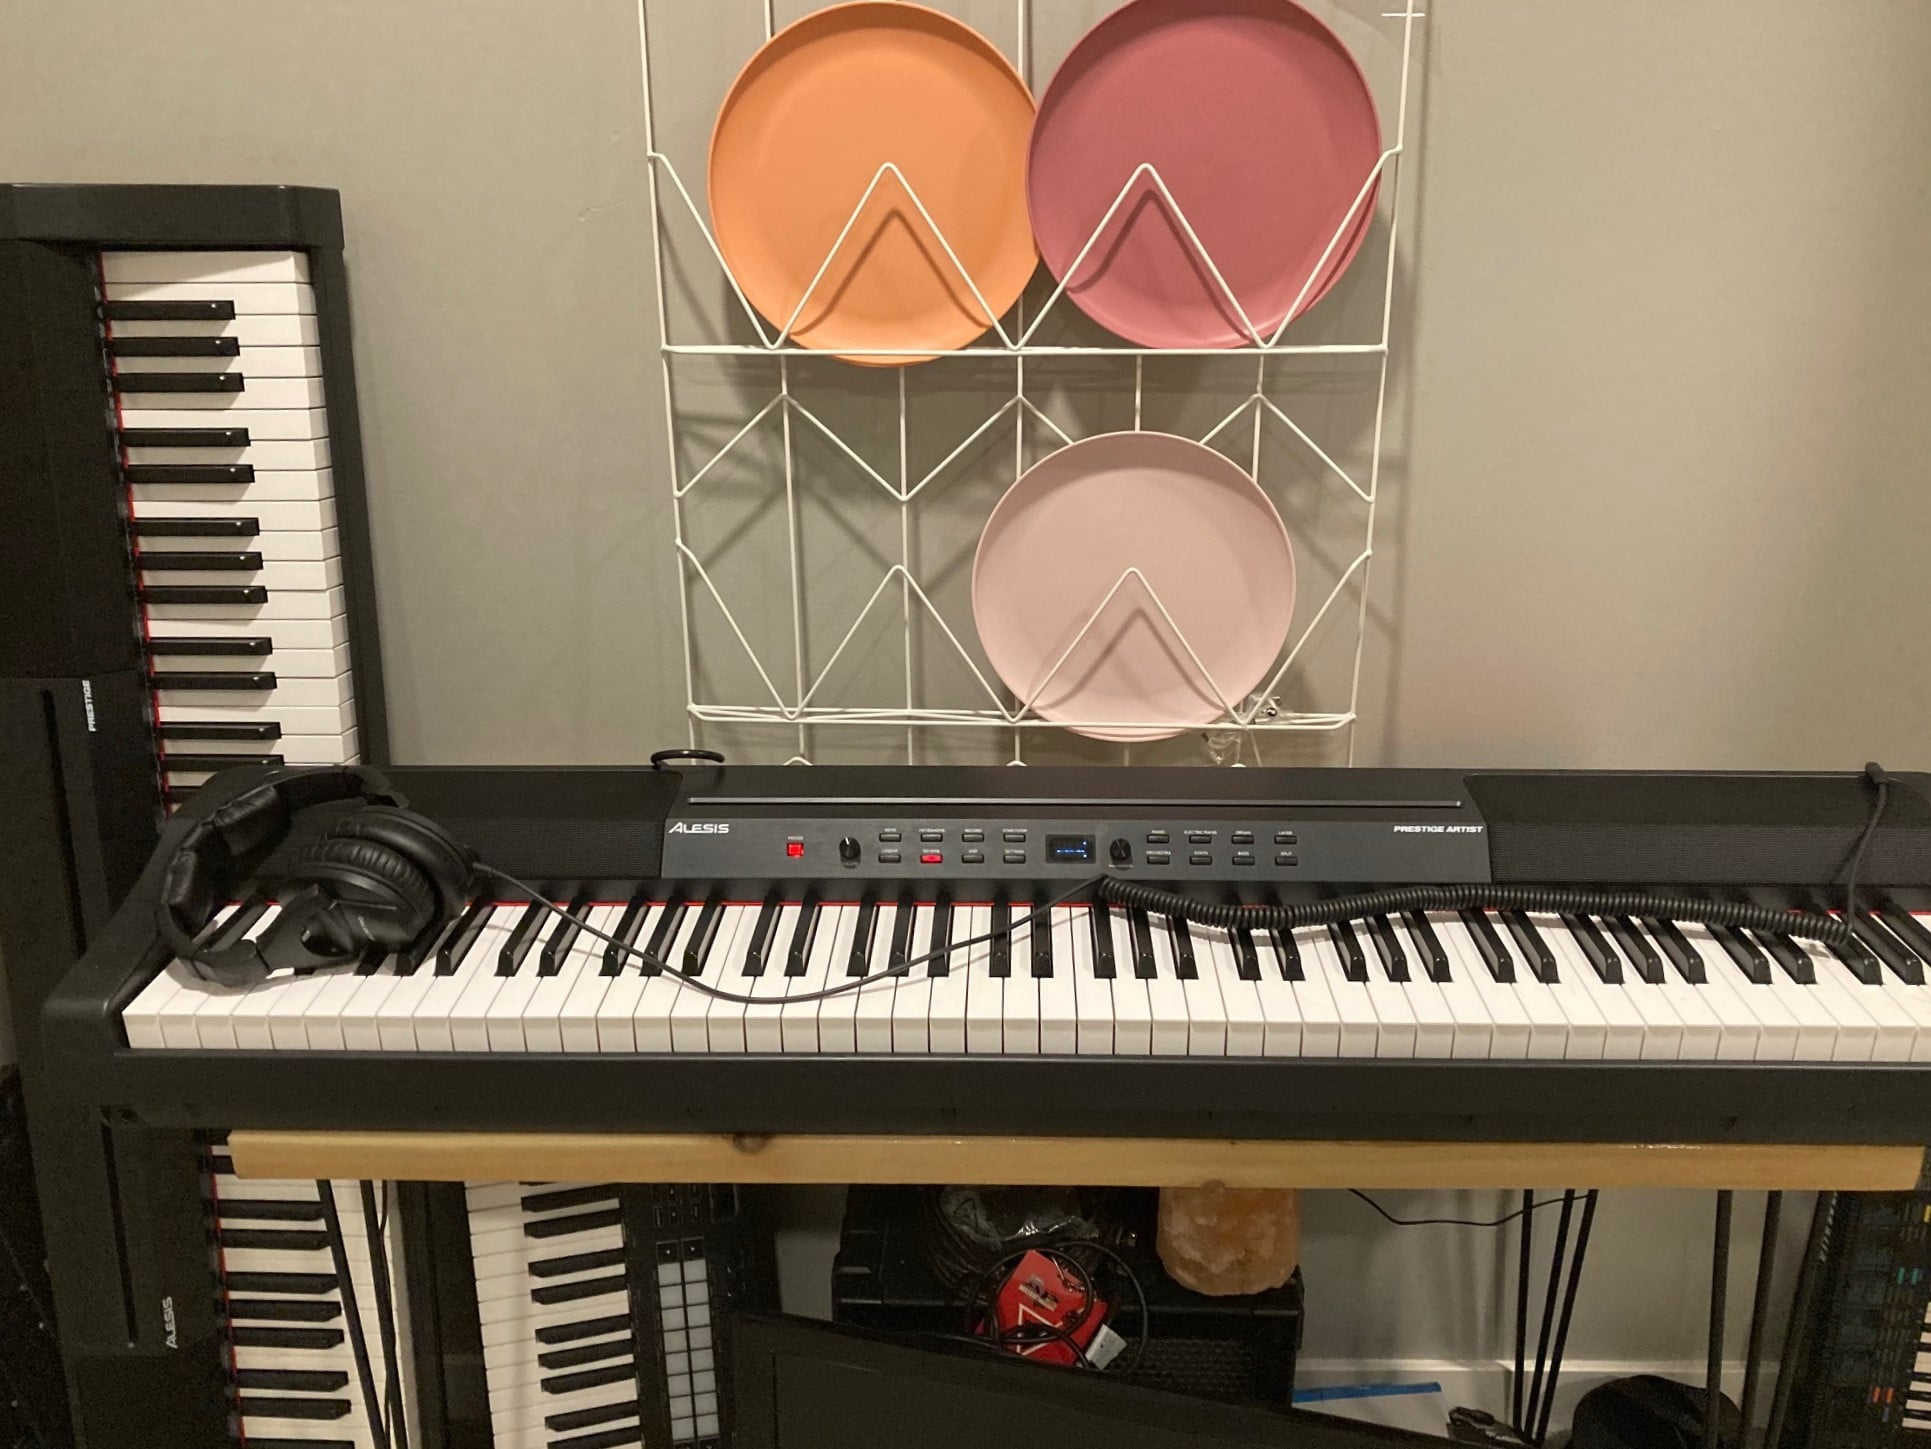 hd 280s with keyboards